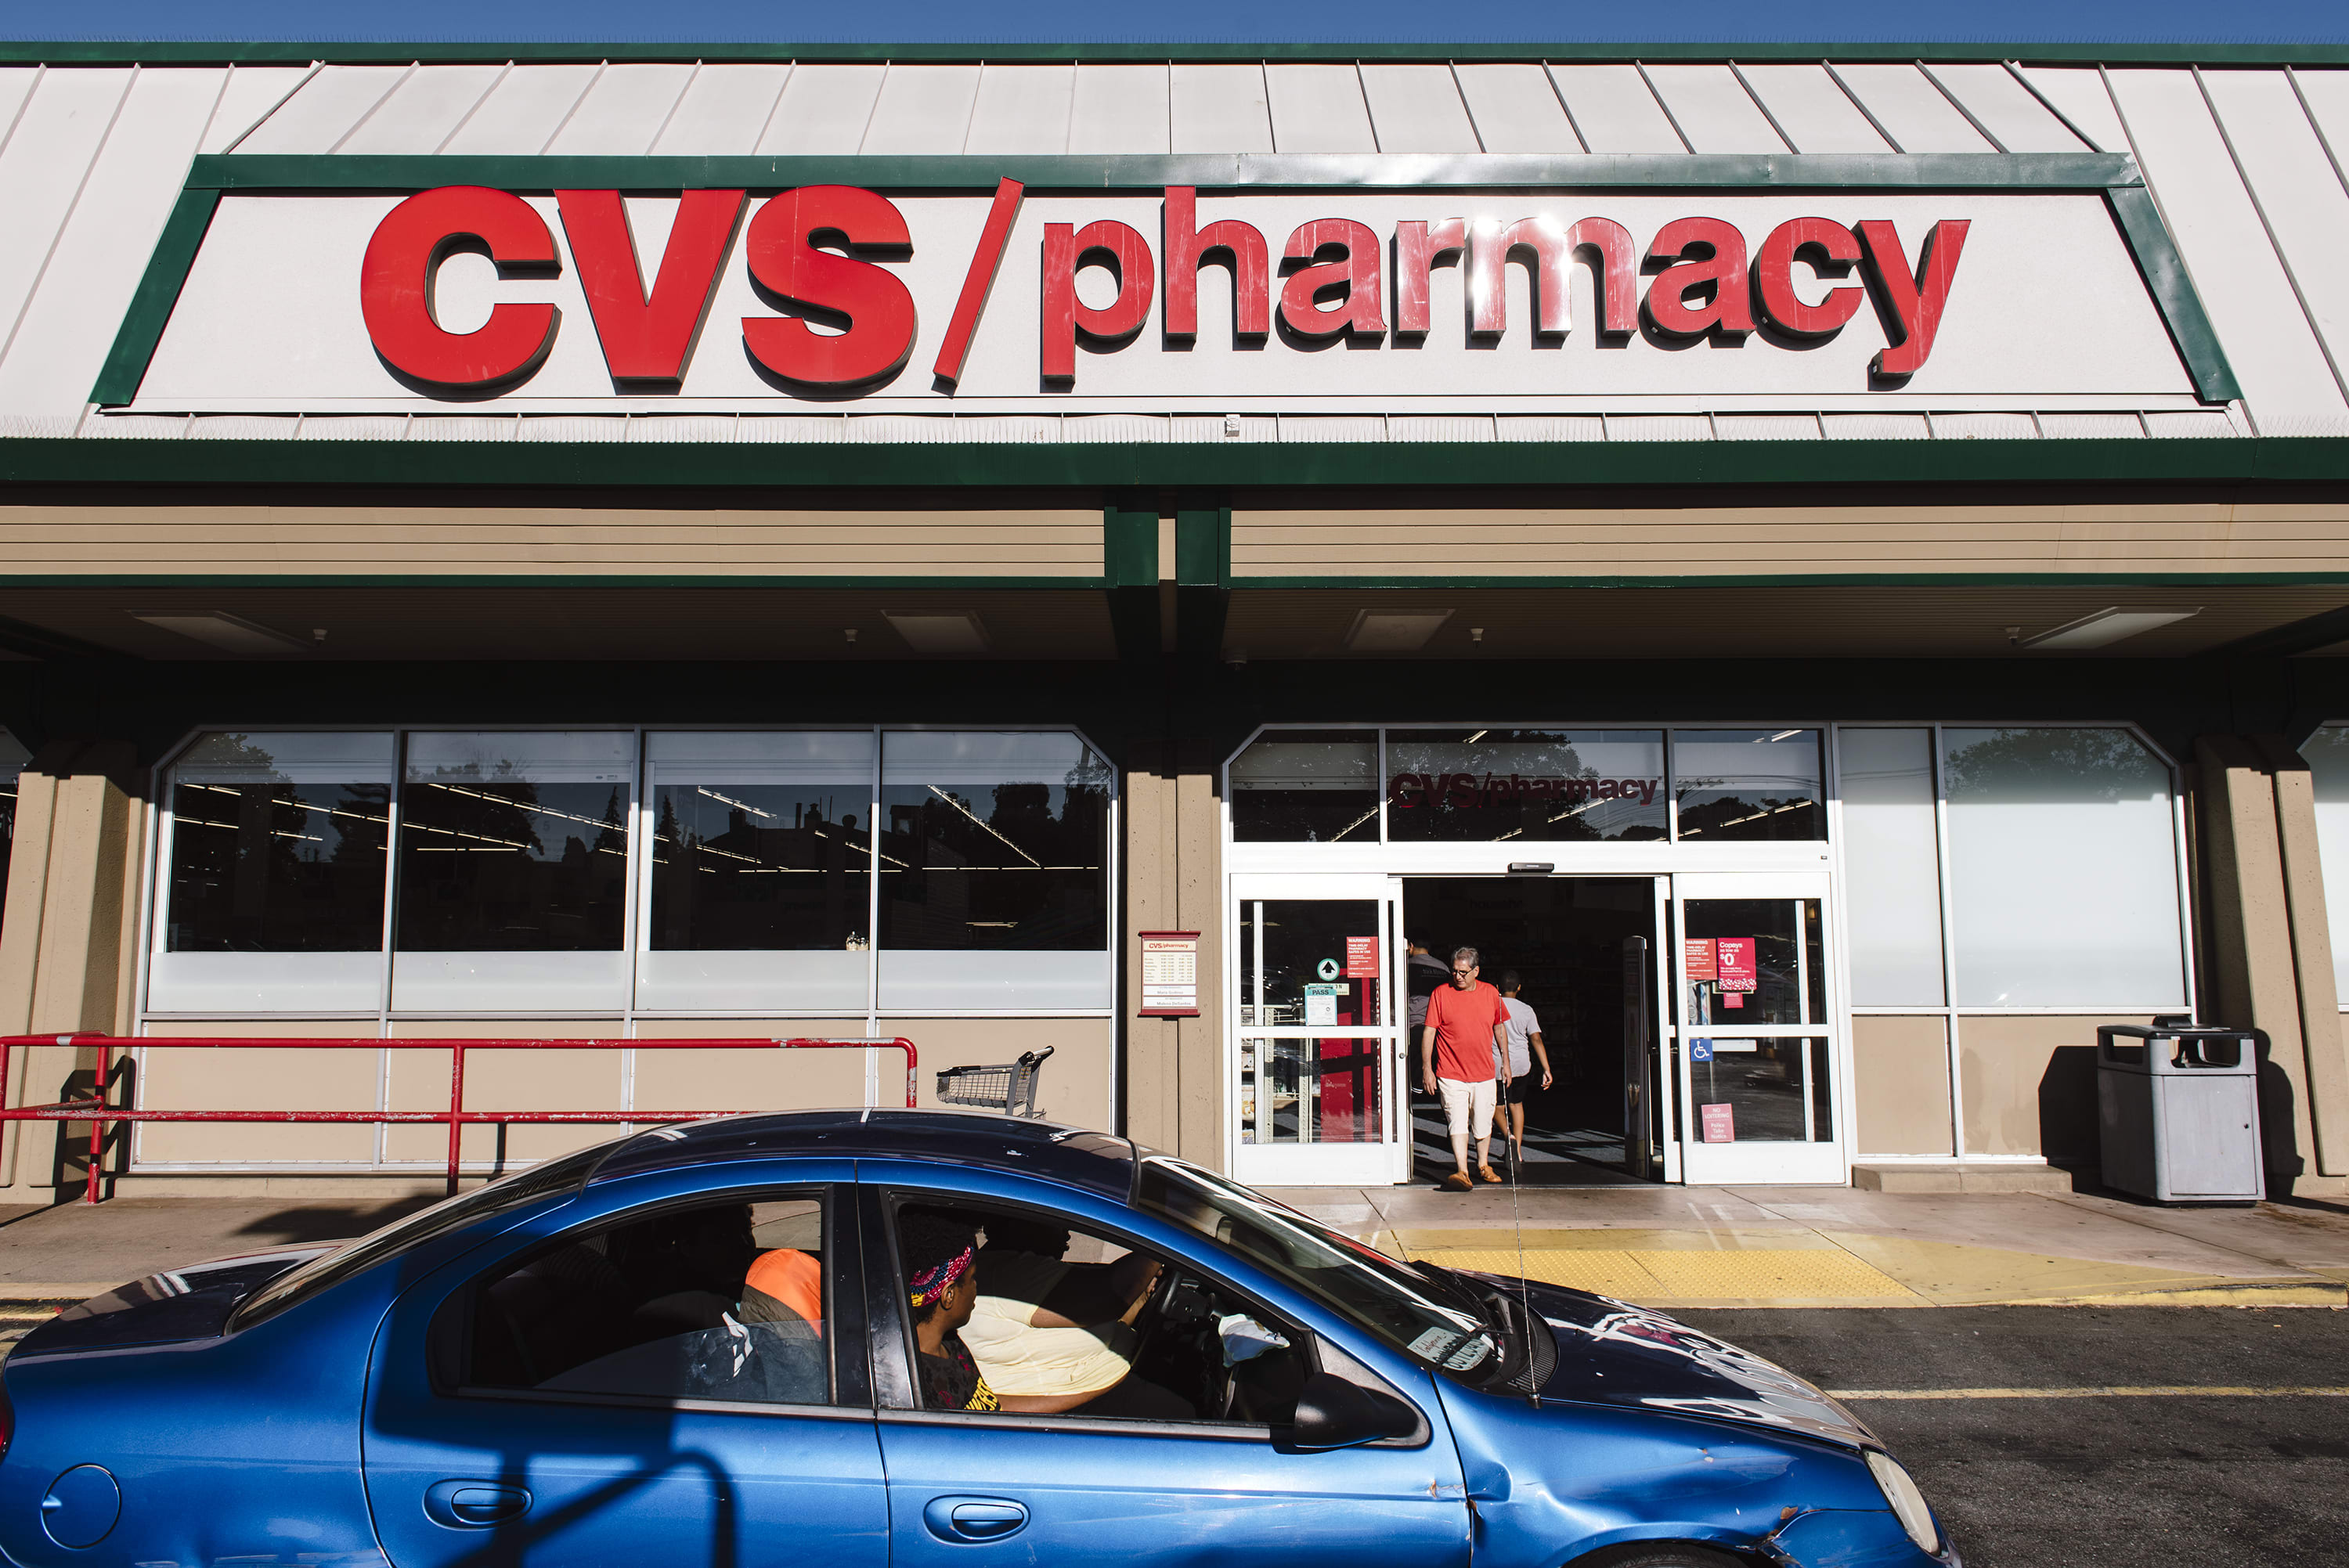 Walgreens, CVS join Walmart, ask shoppers not to openly carry guns